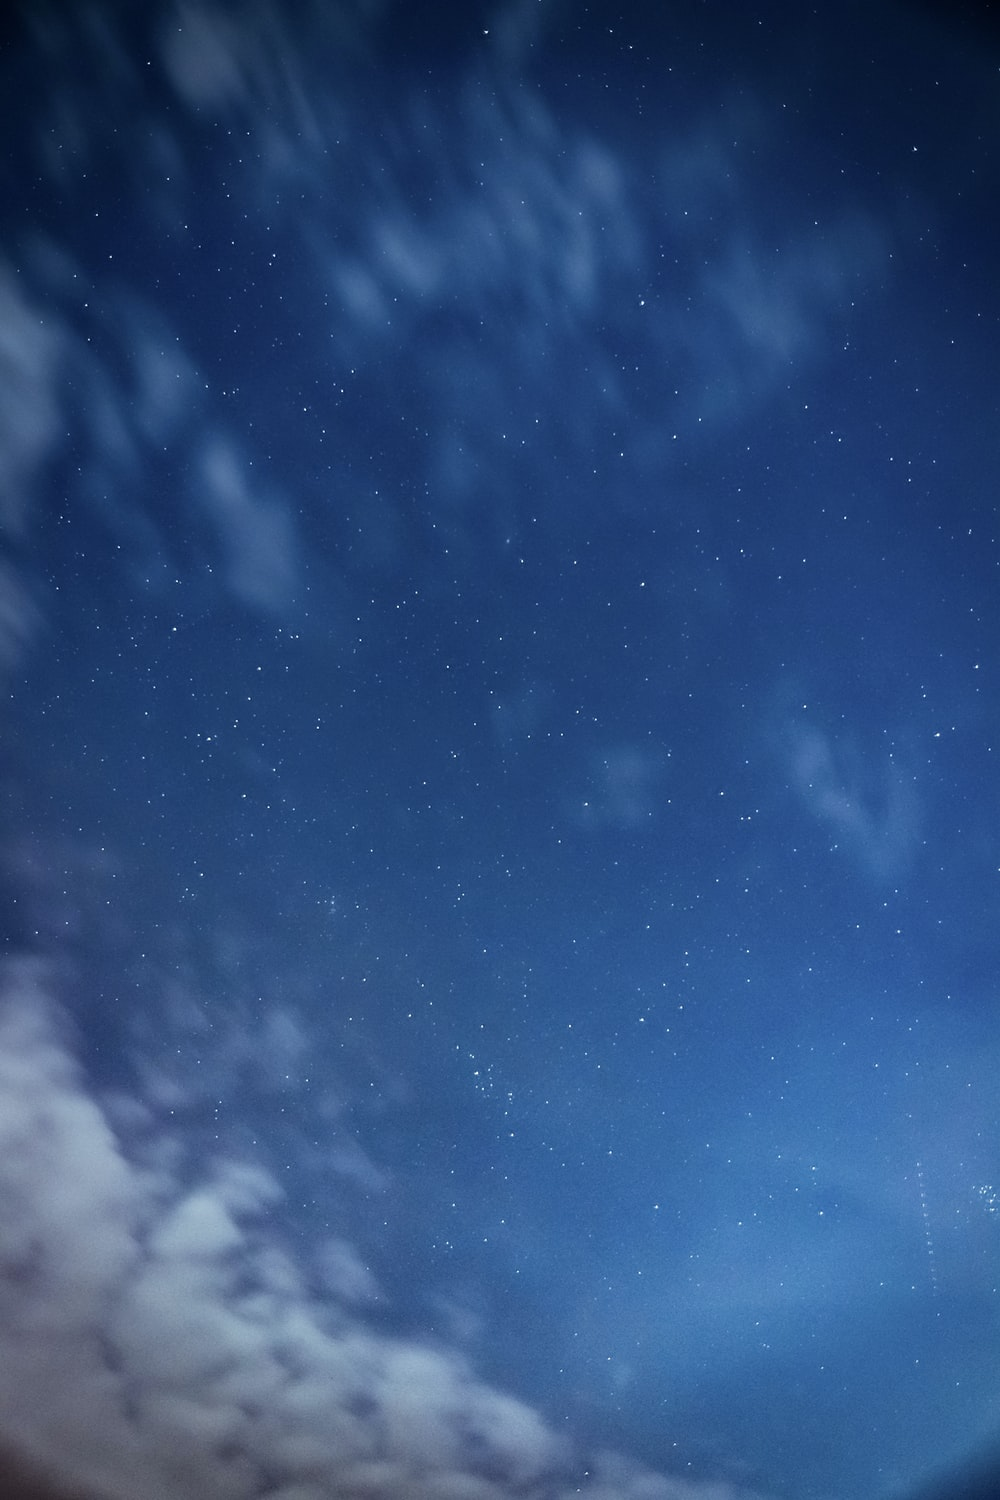 Space And Stars Wallpapers 100 Best Free Wallpaper Star